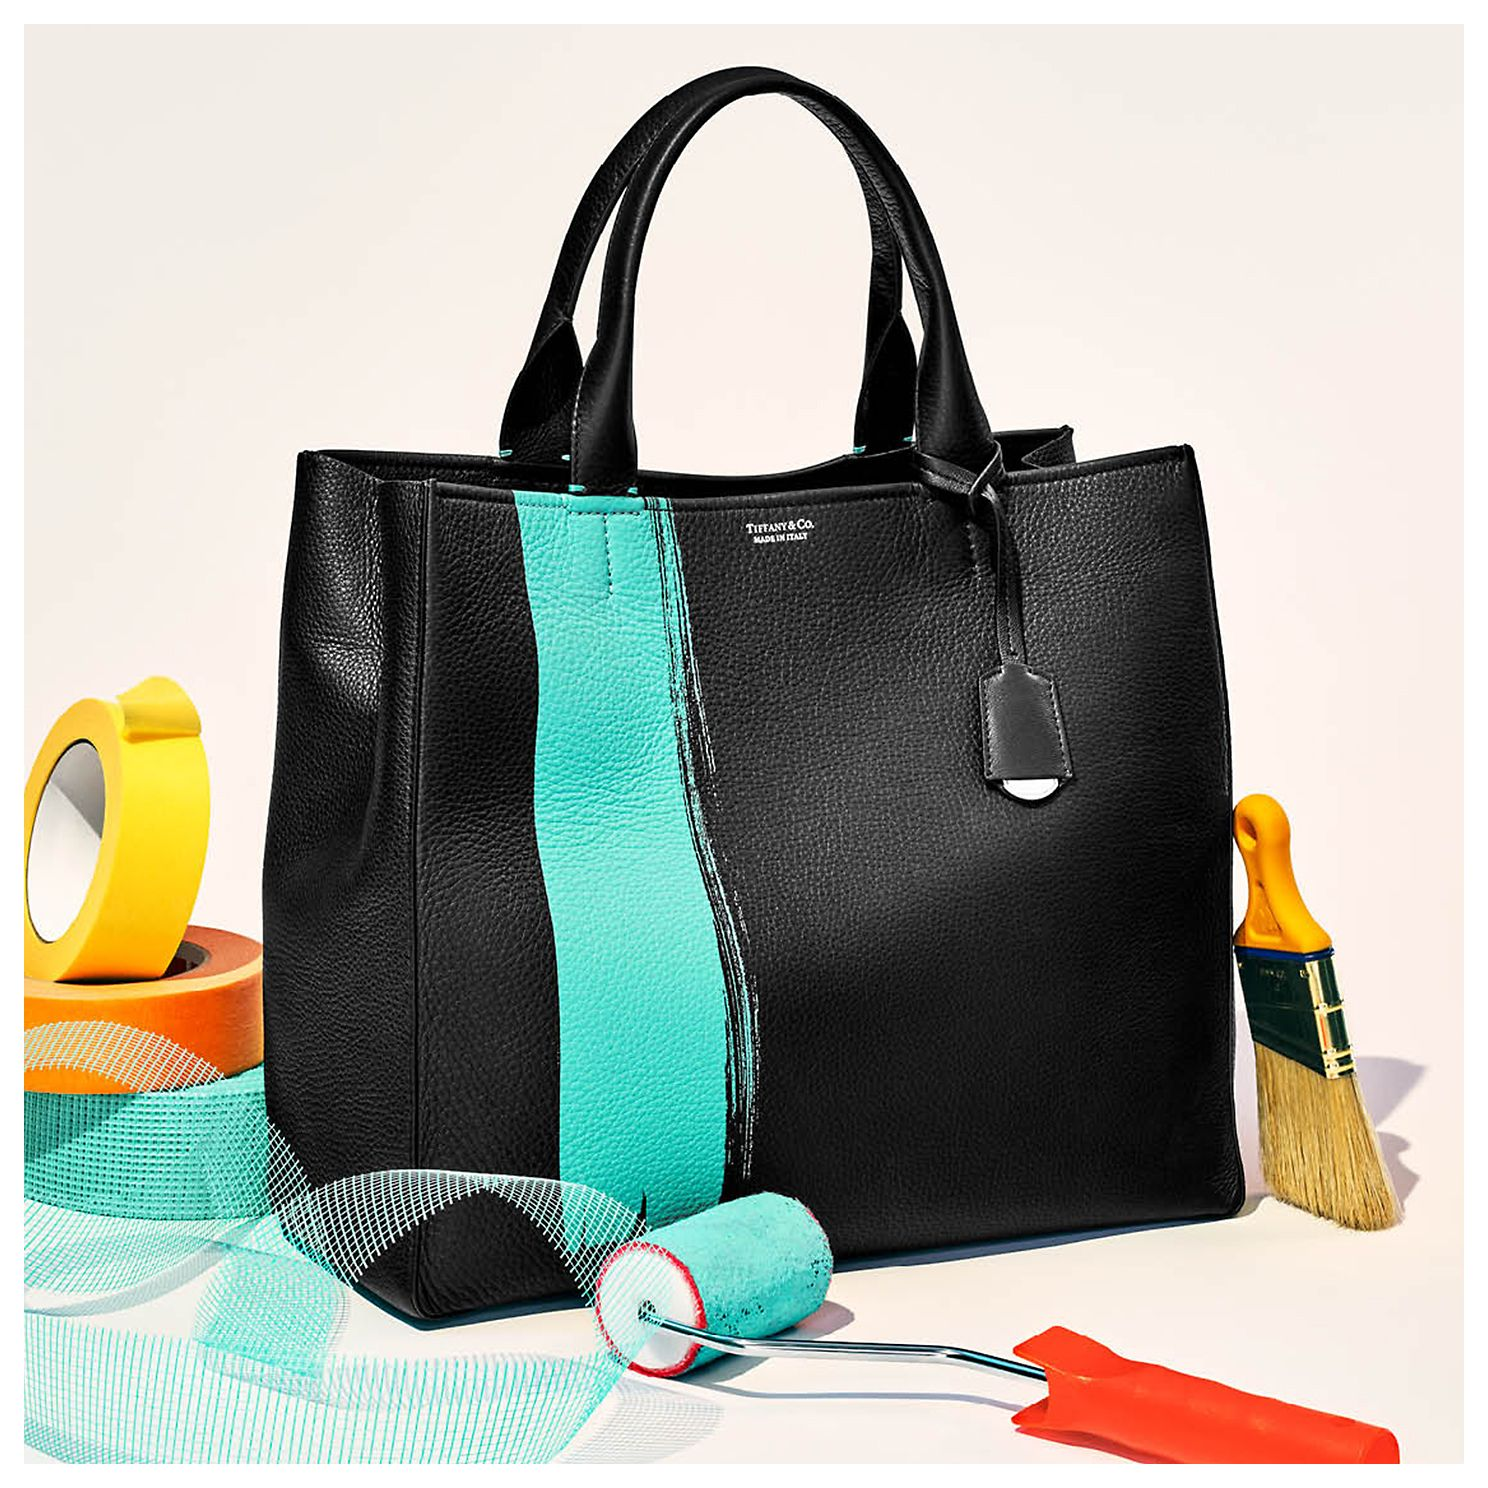 77c9246a698a Leather Goods   Tiffany & Co.